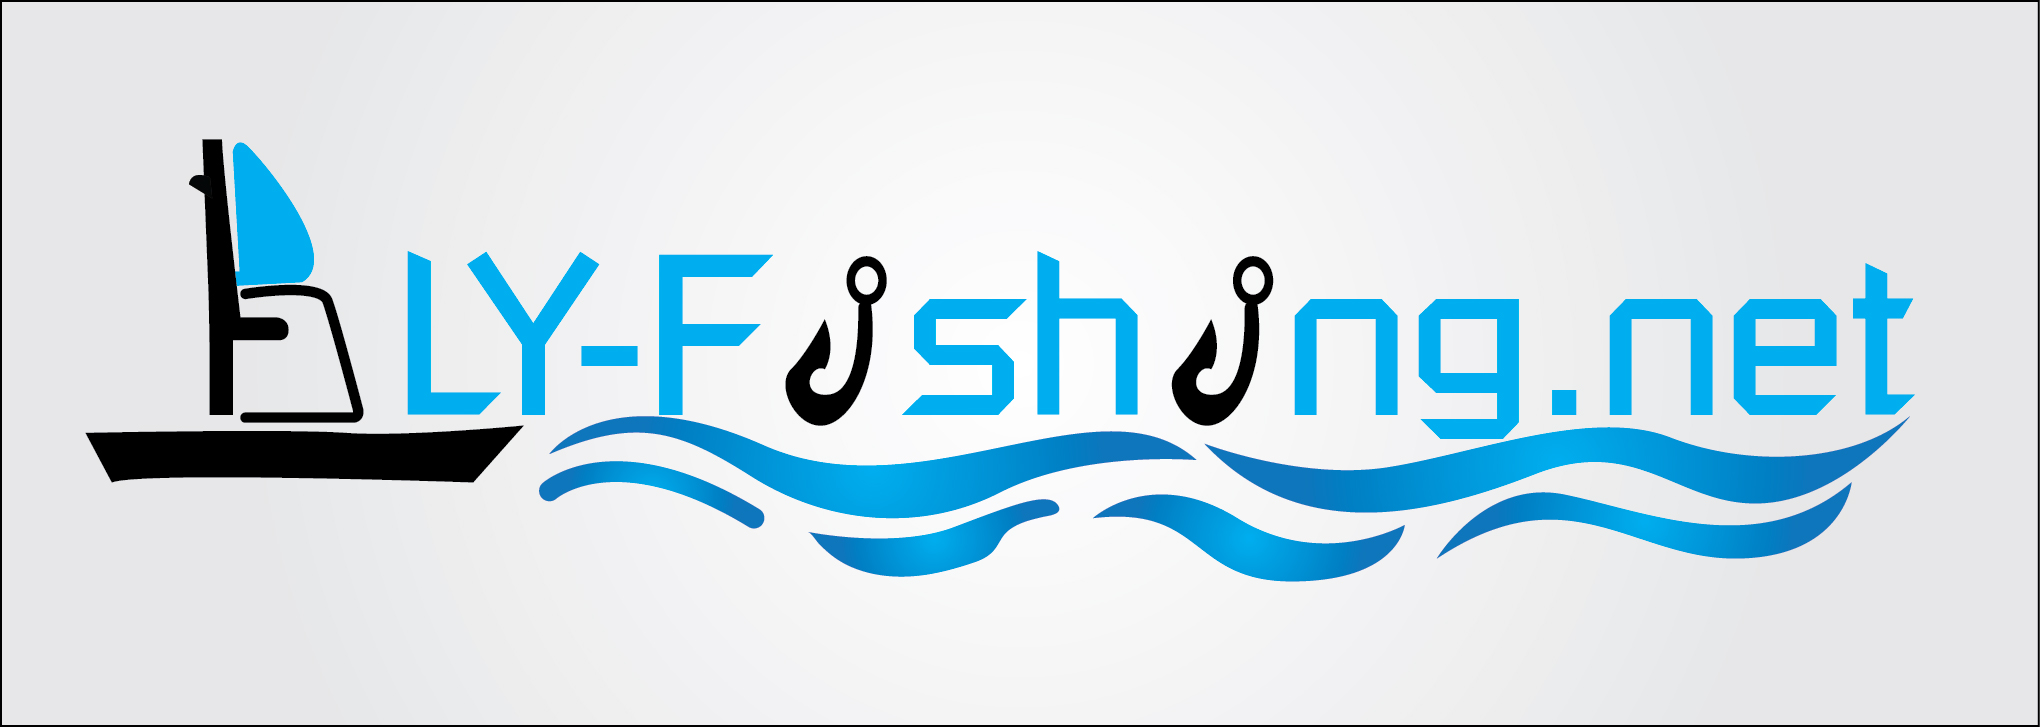 Logo Design by mediaproductionart - Entry No. 88 in the Logo Design Contest Artistic Logo Design for fly-fishing.net.